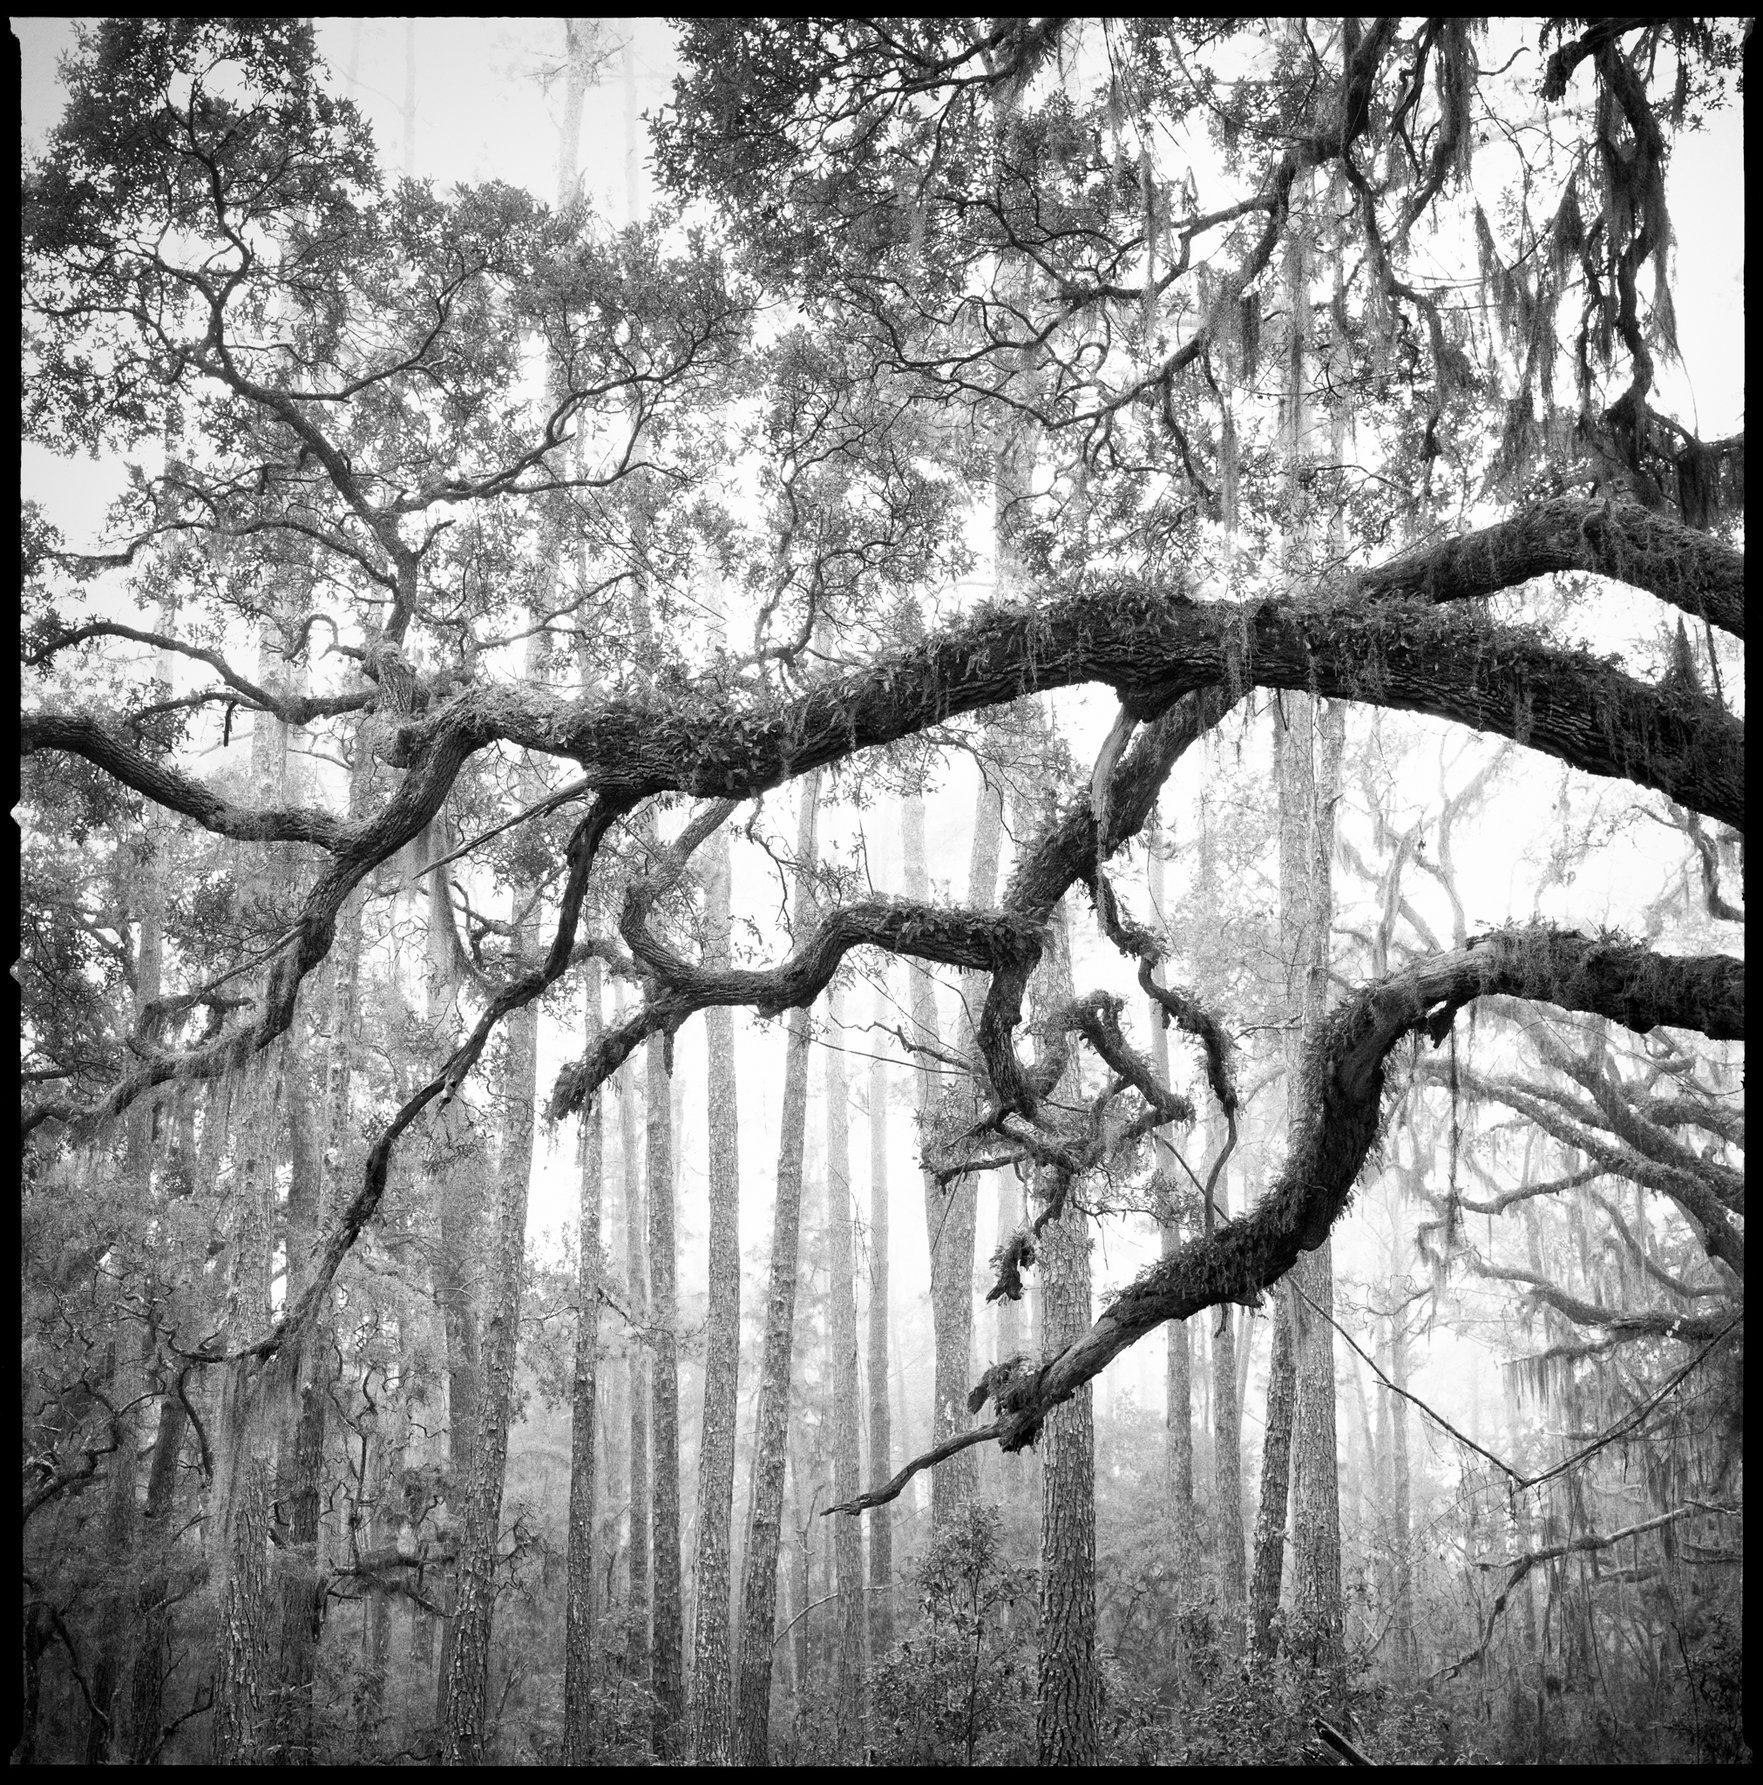 Live Oak & Longleaf Pines in Fog, Old River Trail